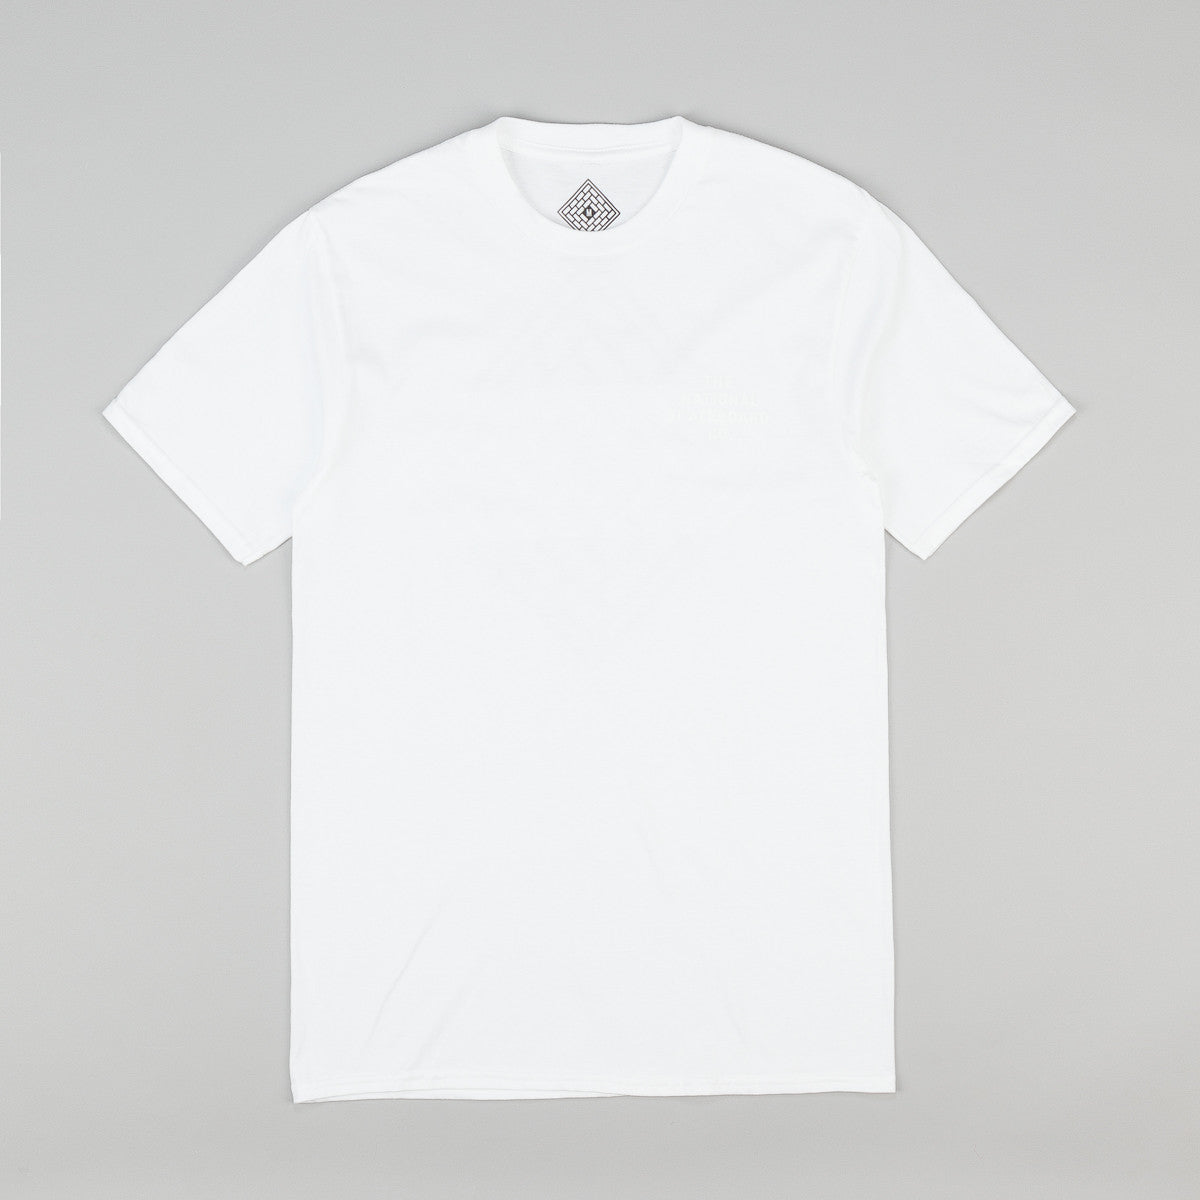 The National Skateboard Co Division T-Shirt